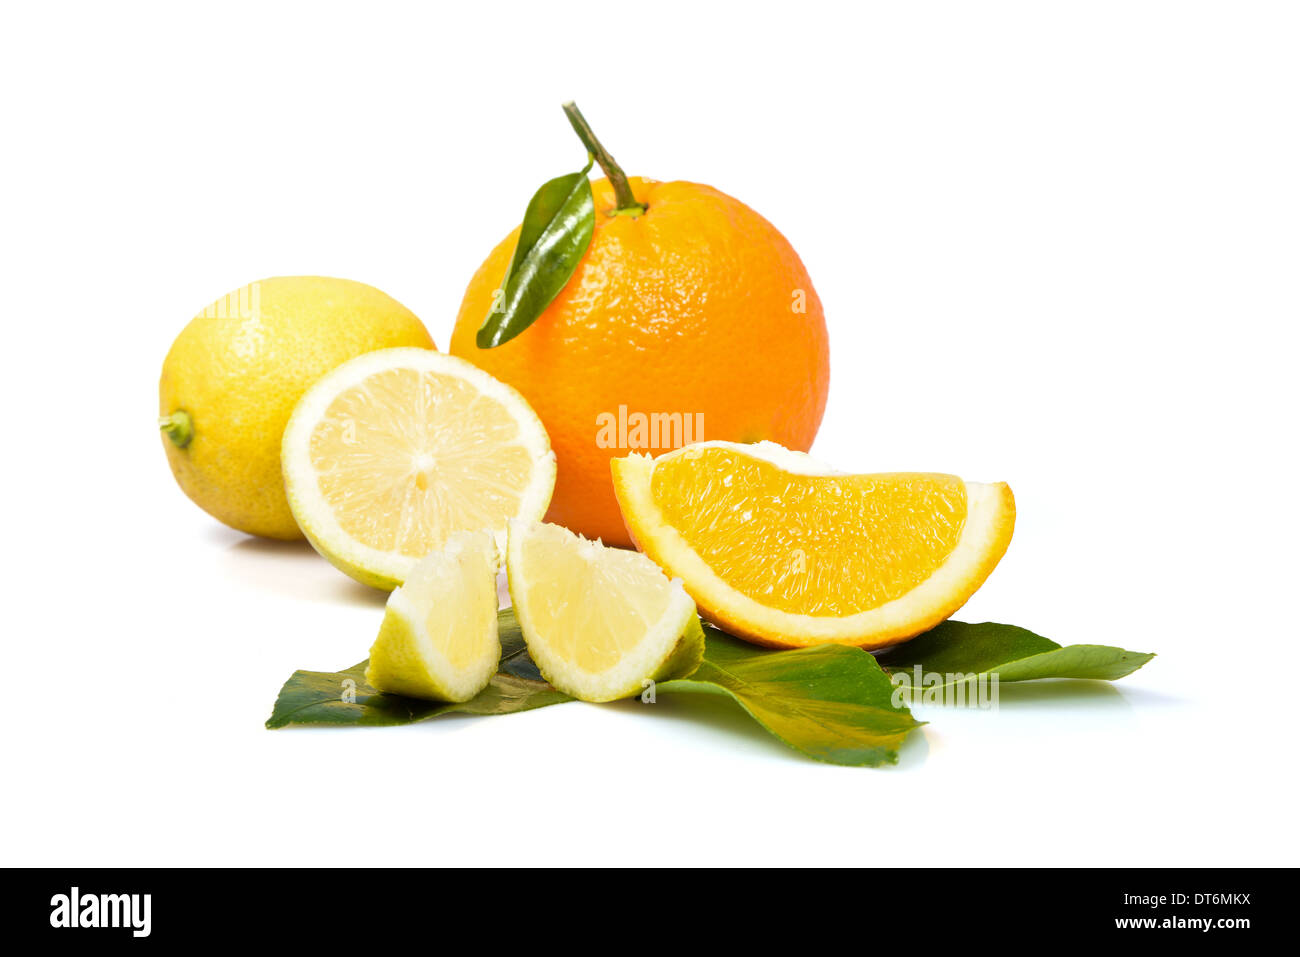 Ripe lemon and oranges with a green leaf on a white background - Stock Image